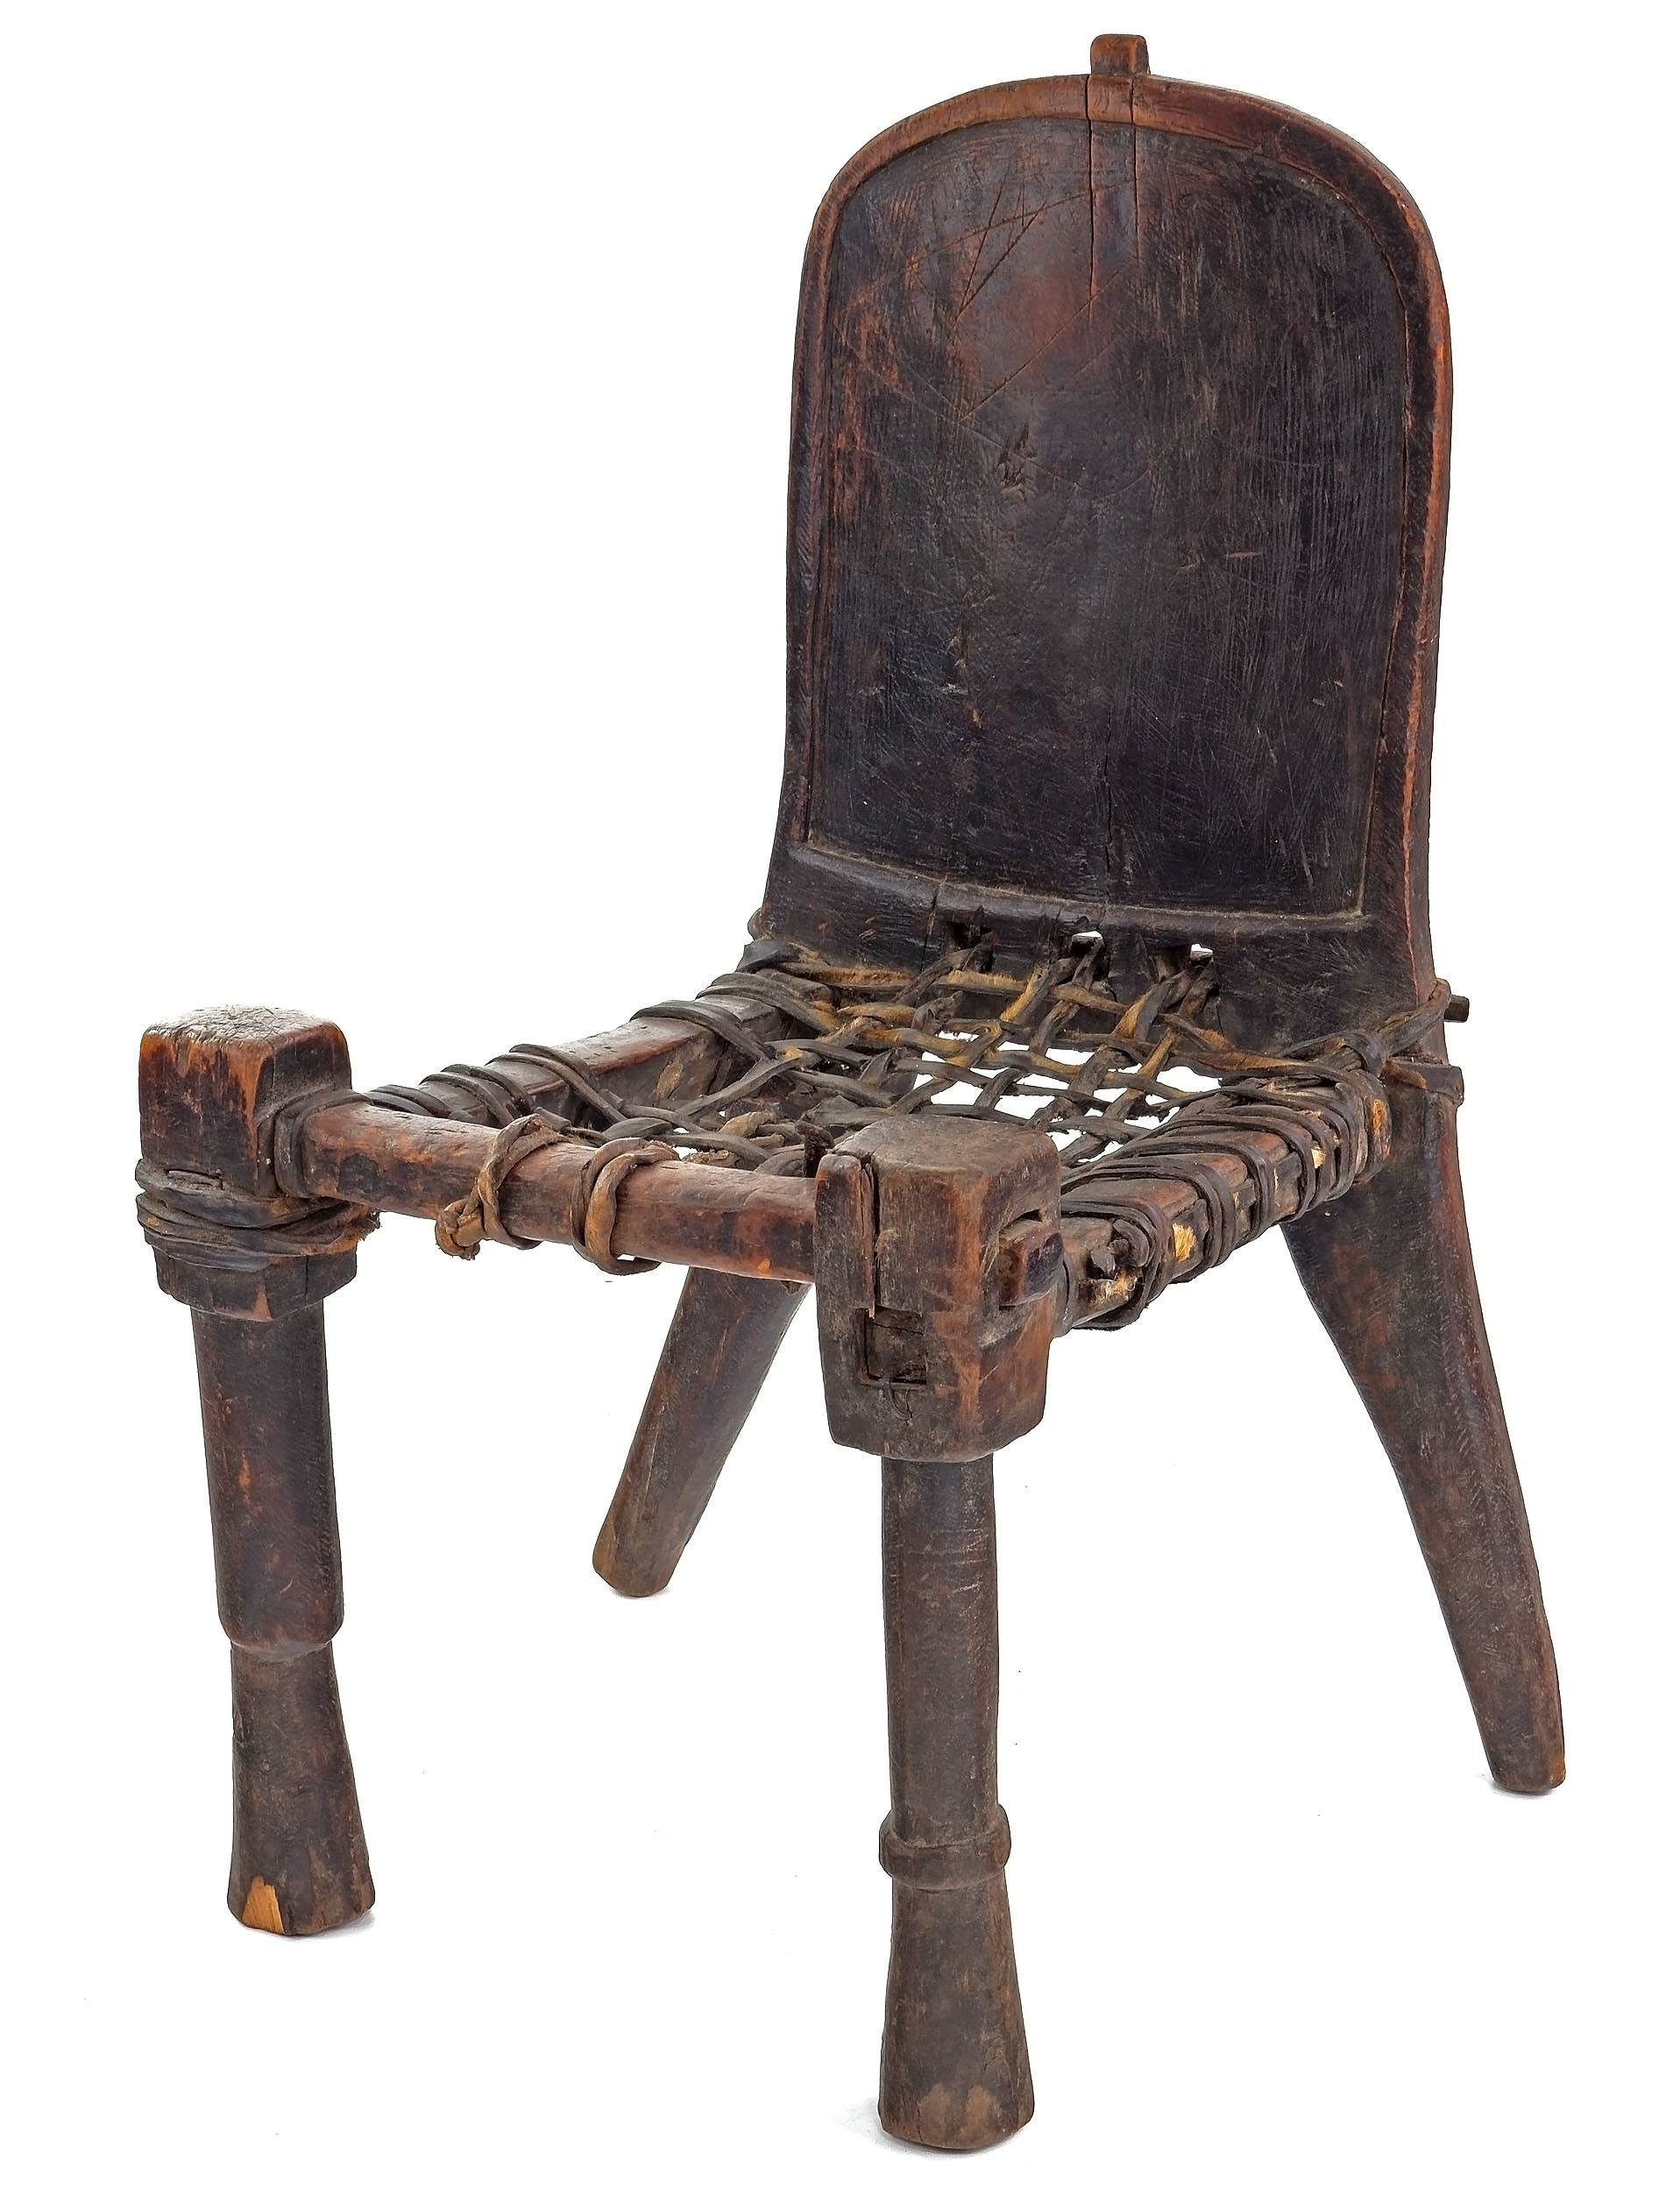 'Chair, Afar People, Afar Region Ethiopia'